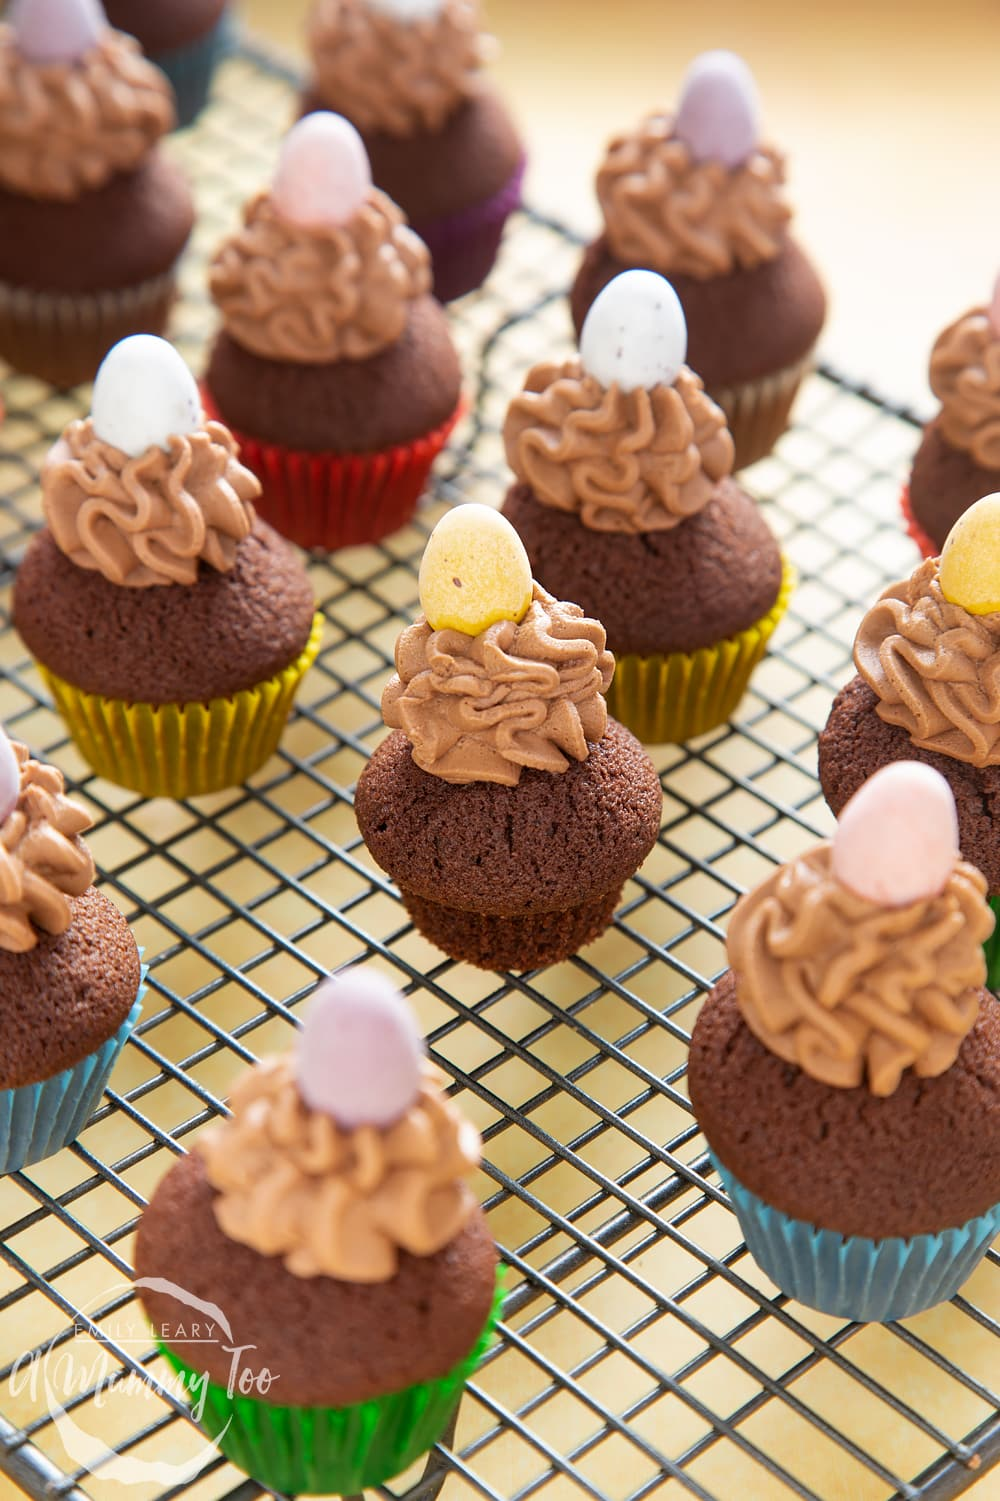 Front angle shot of a Mini chocolate cupcake for Easter topped with a mummy too logo in the lower-left corner